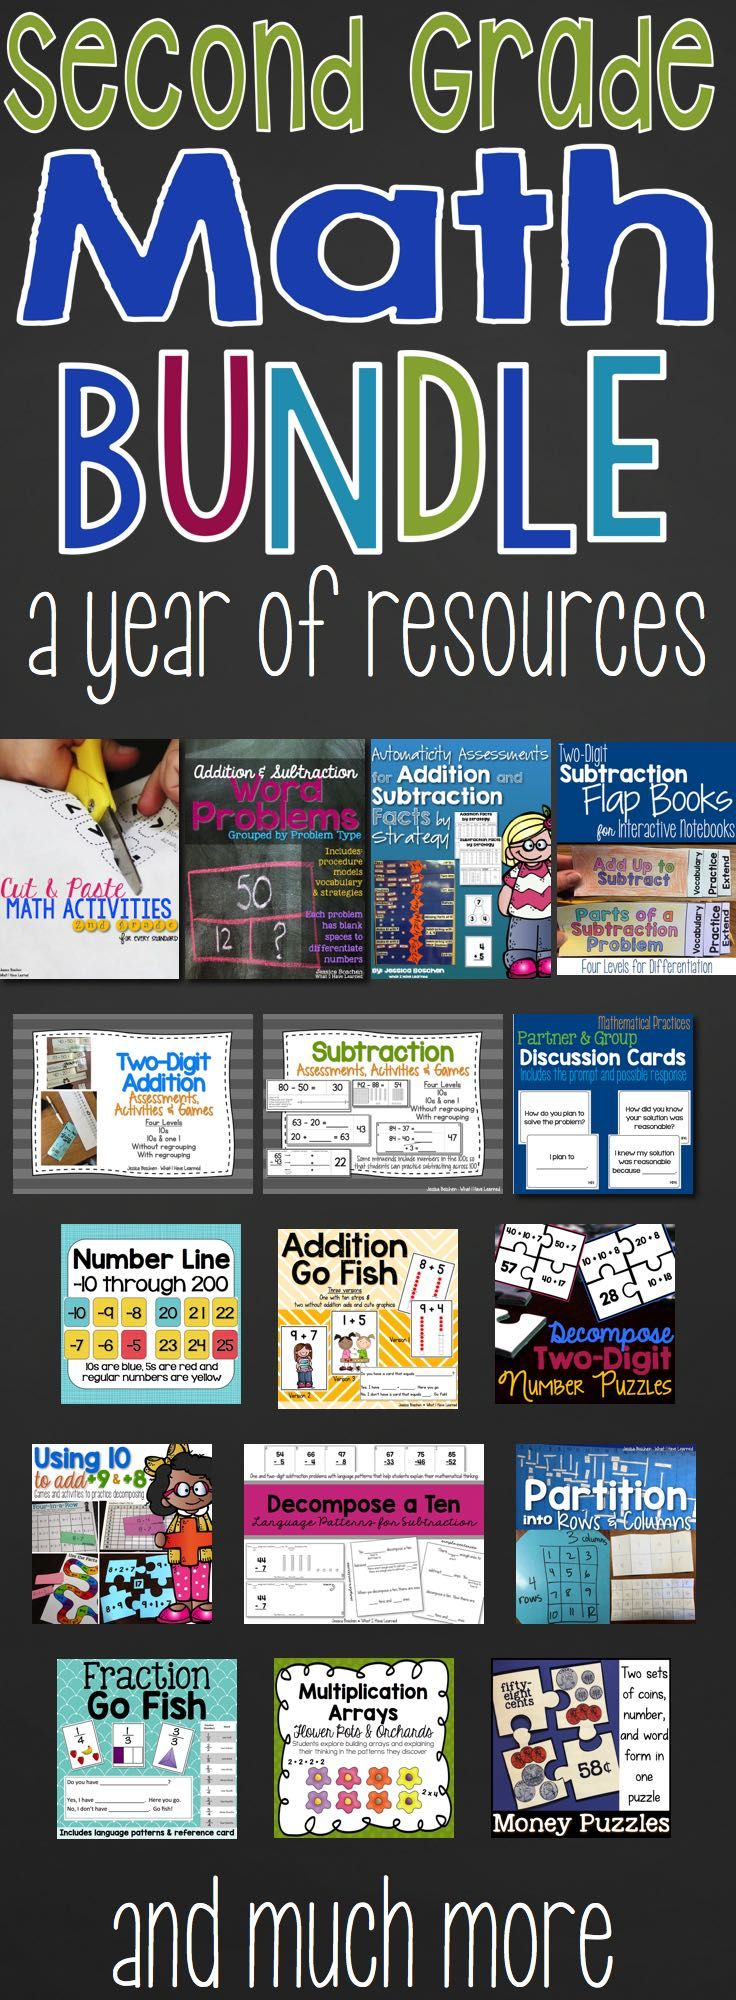 This Second Grade Math BUNDLE is full of resources for your classroom. These are the same activities and games that I have used in my classroom for the past several years. Resources are arranged by season and unit and span the full year.  Get them all at a severely discounted price.